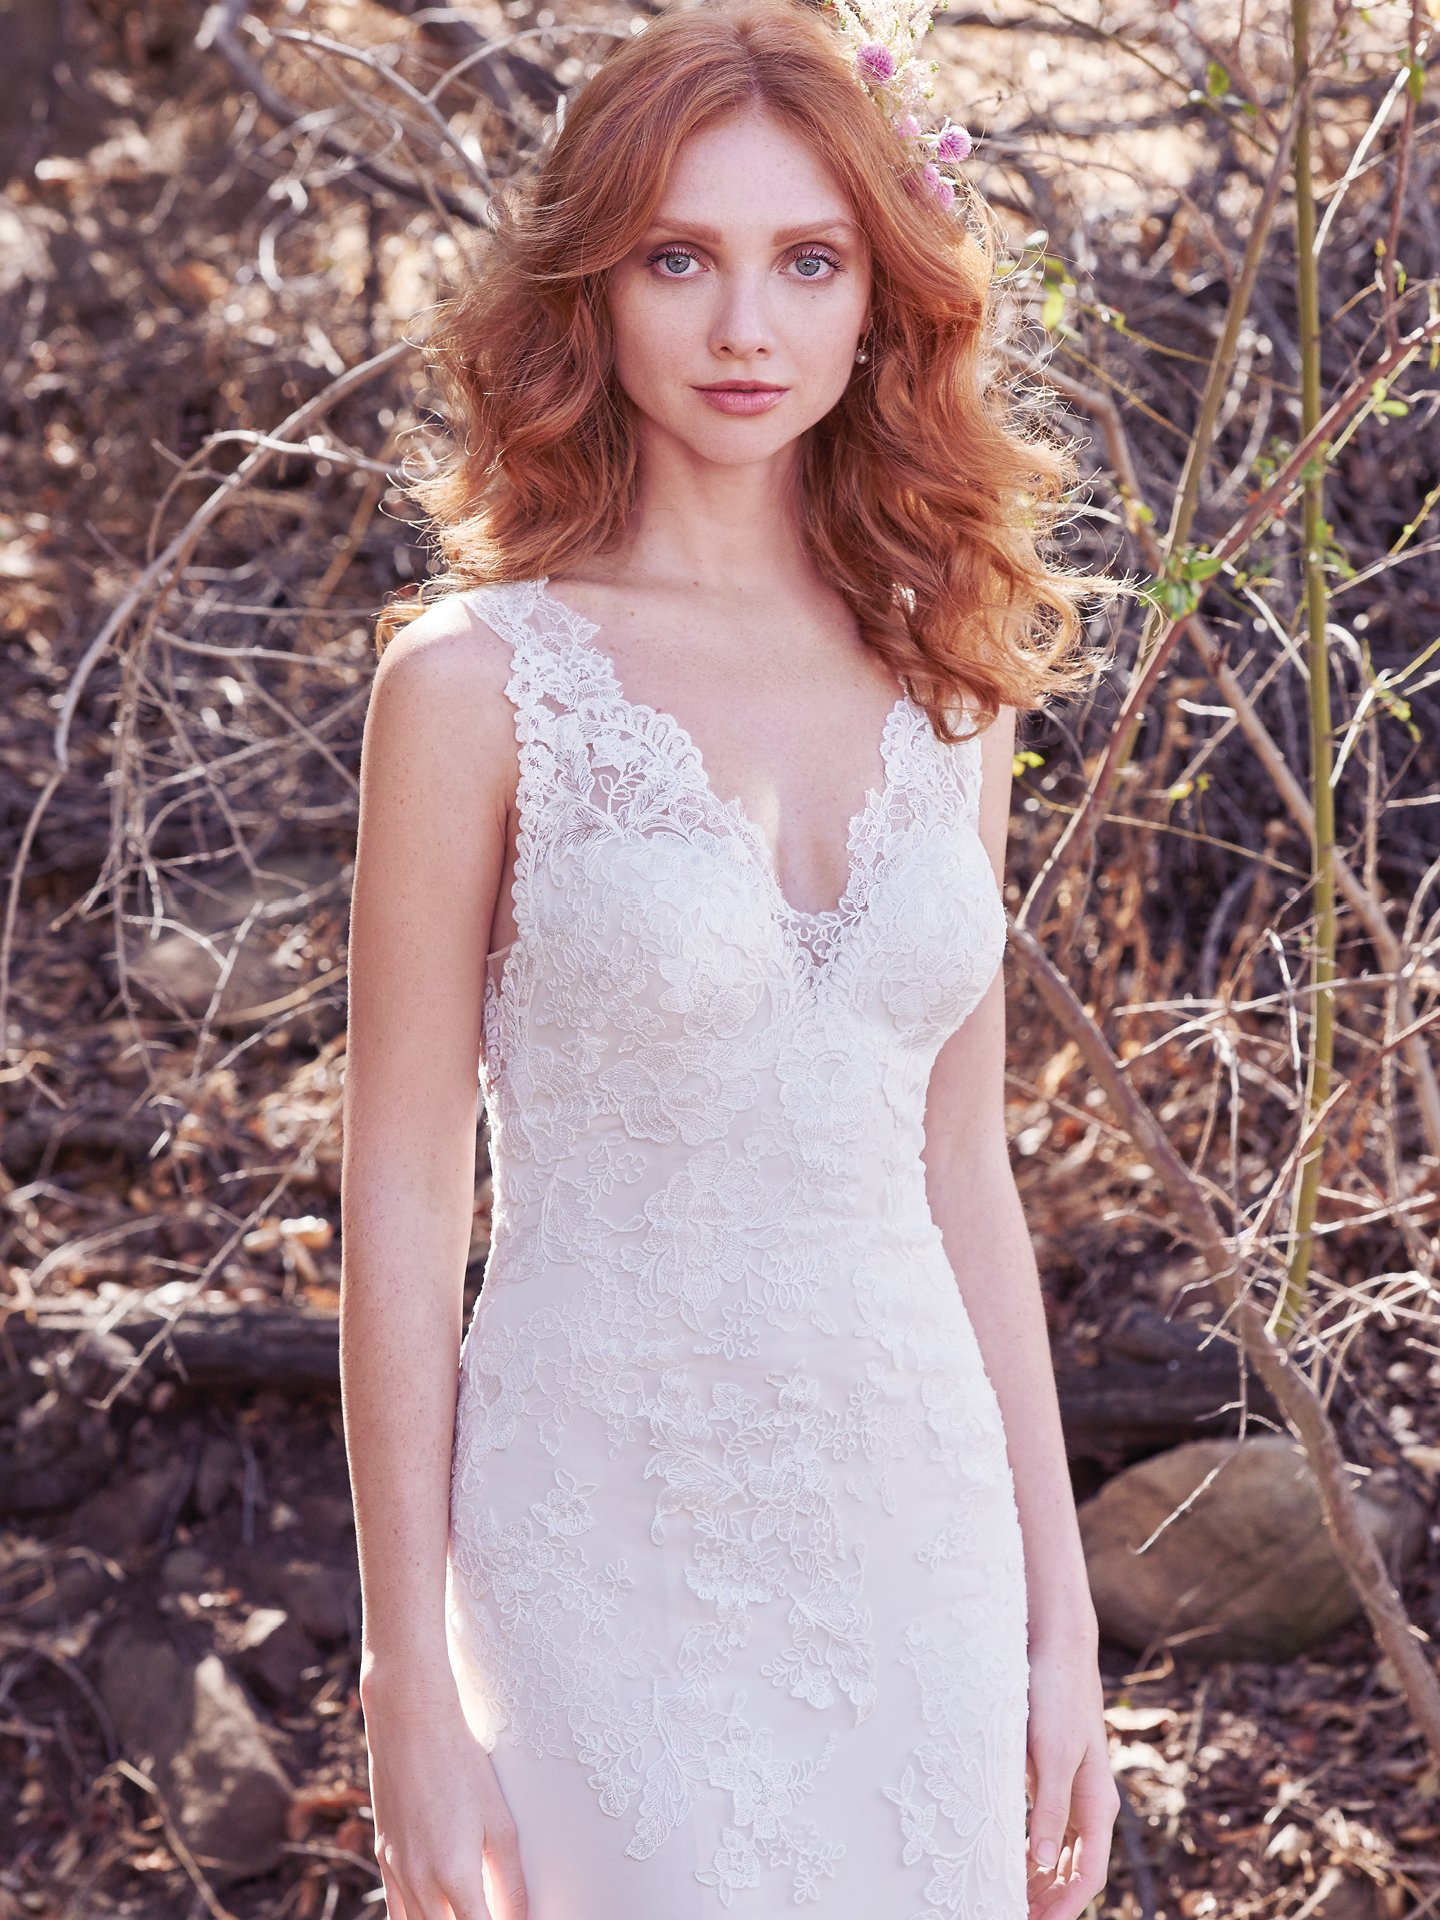 Even more blush wedding dresses by maggie sottero love maggie ramona blush wedding dress this soft sheath wedding dress features cascades of heirloom inspired junglespirit Choice Image